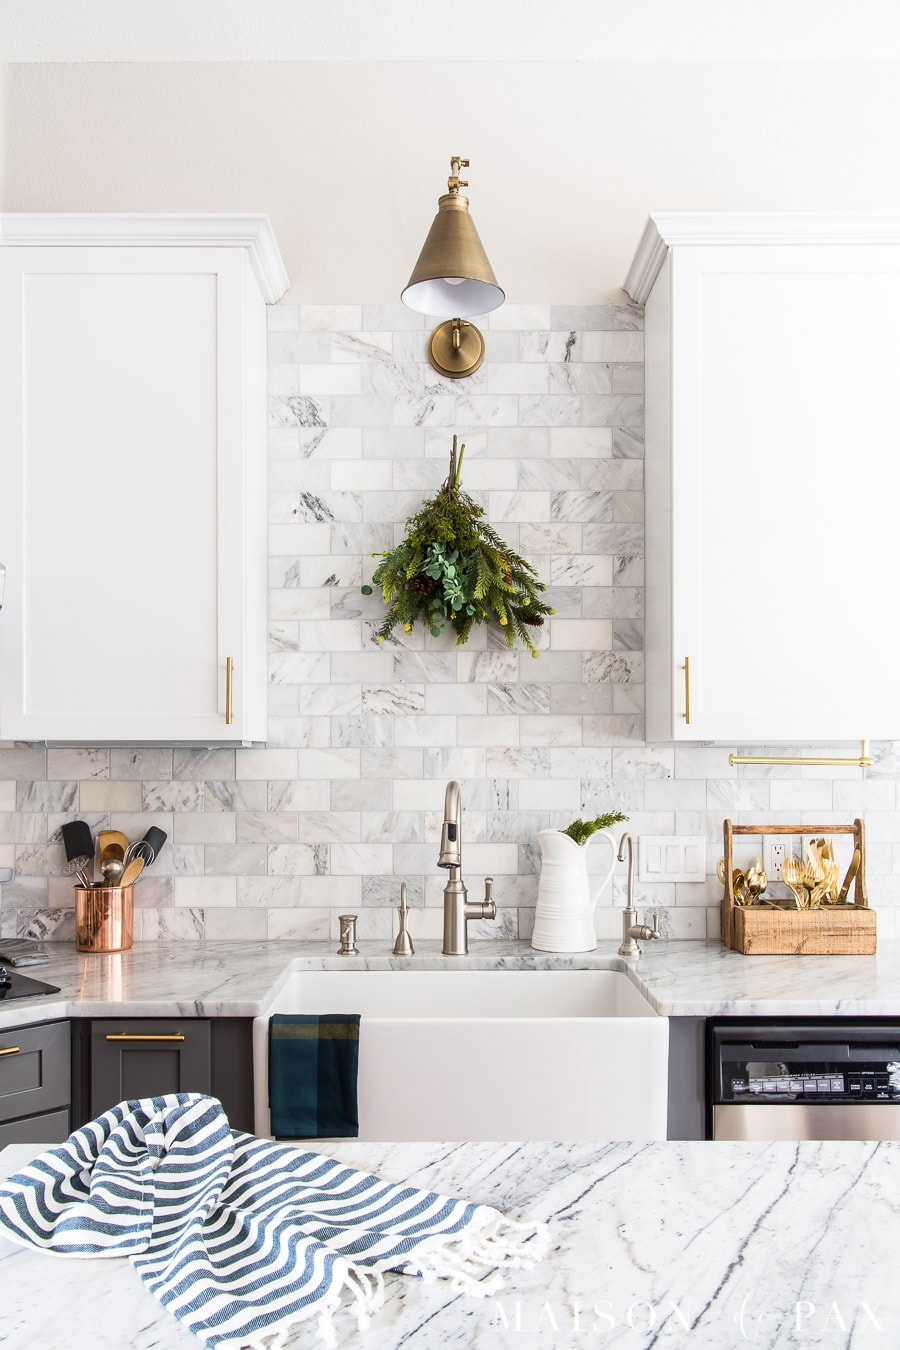 Marble Backsplash In A Two Toned Kitchen With Dark Green Holiday Accents